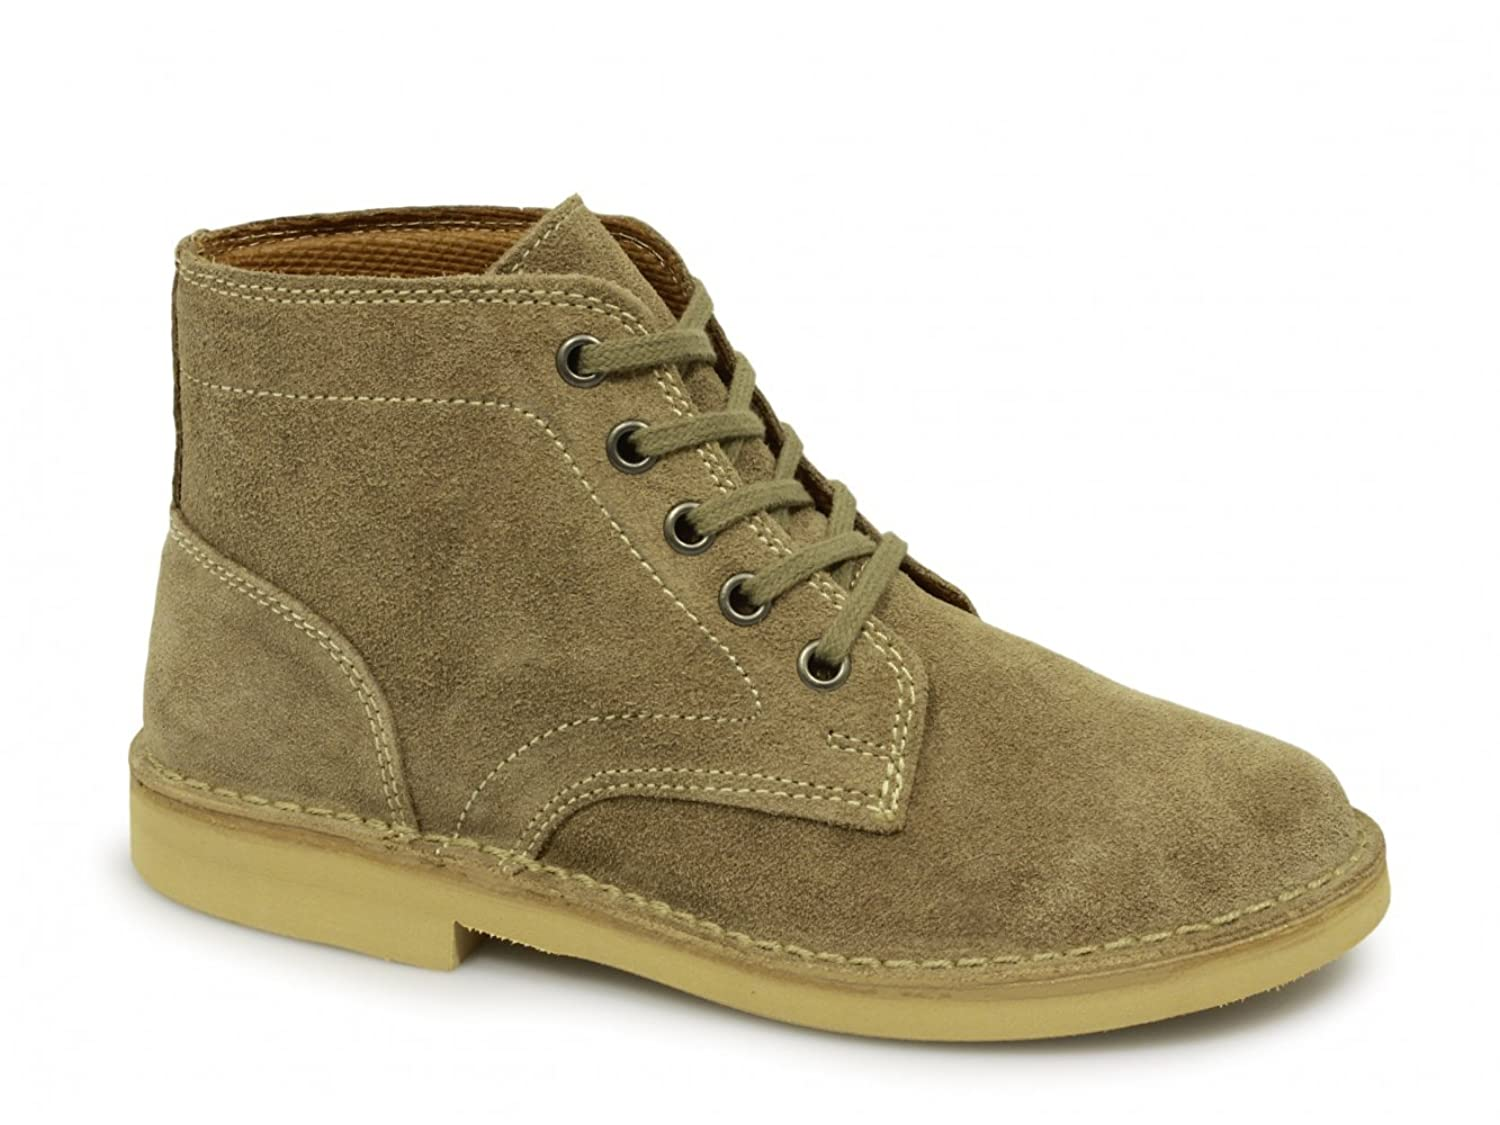 147e9aa1bb5 Mens D Ring Desert Boots Light Taupe Suede Leather   Tread Grip sole ...